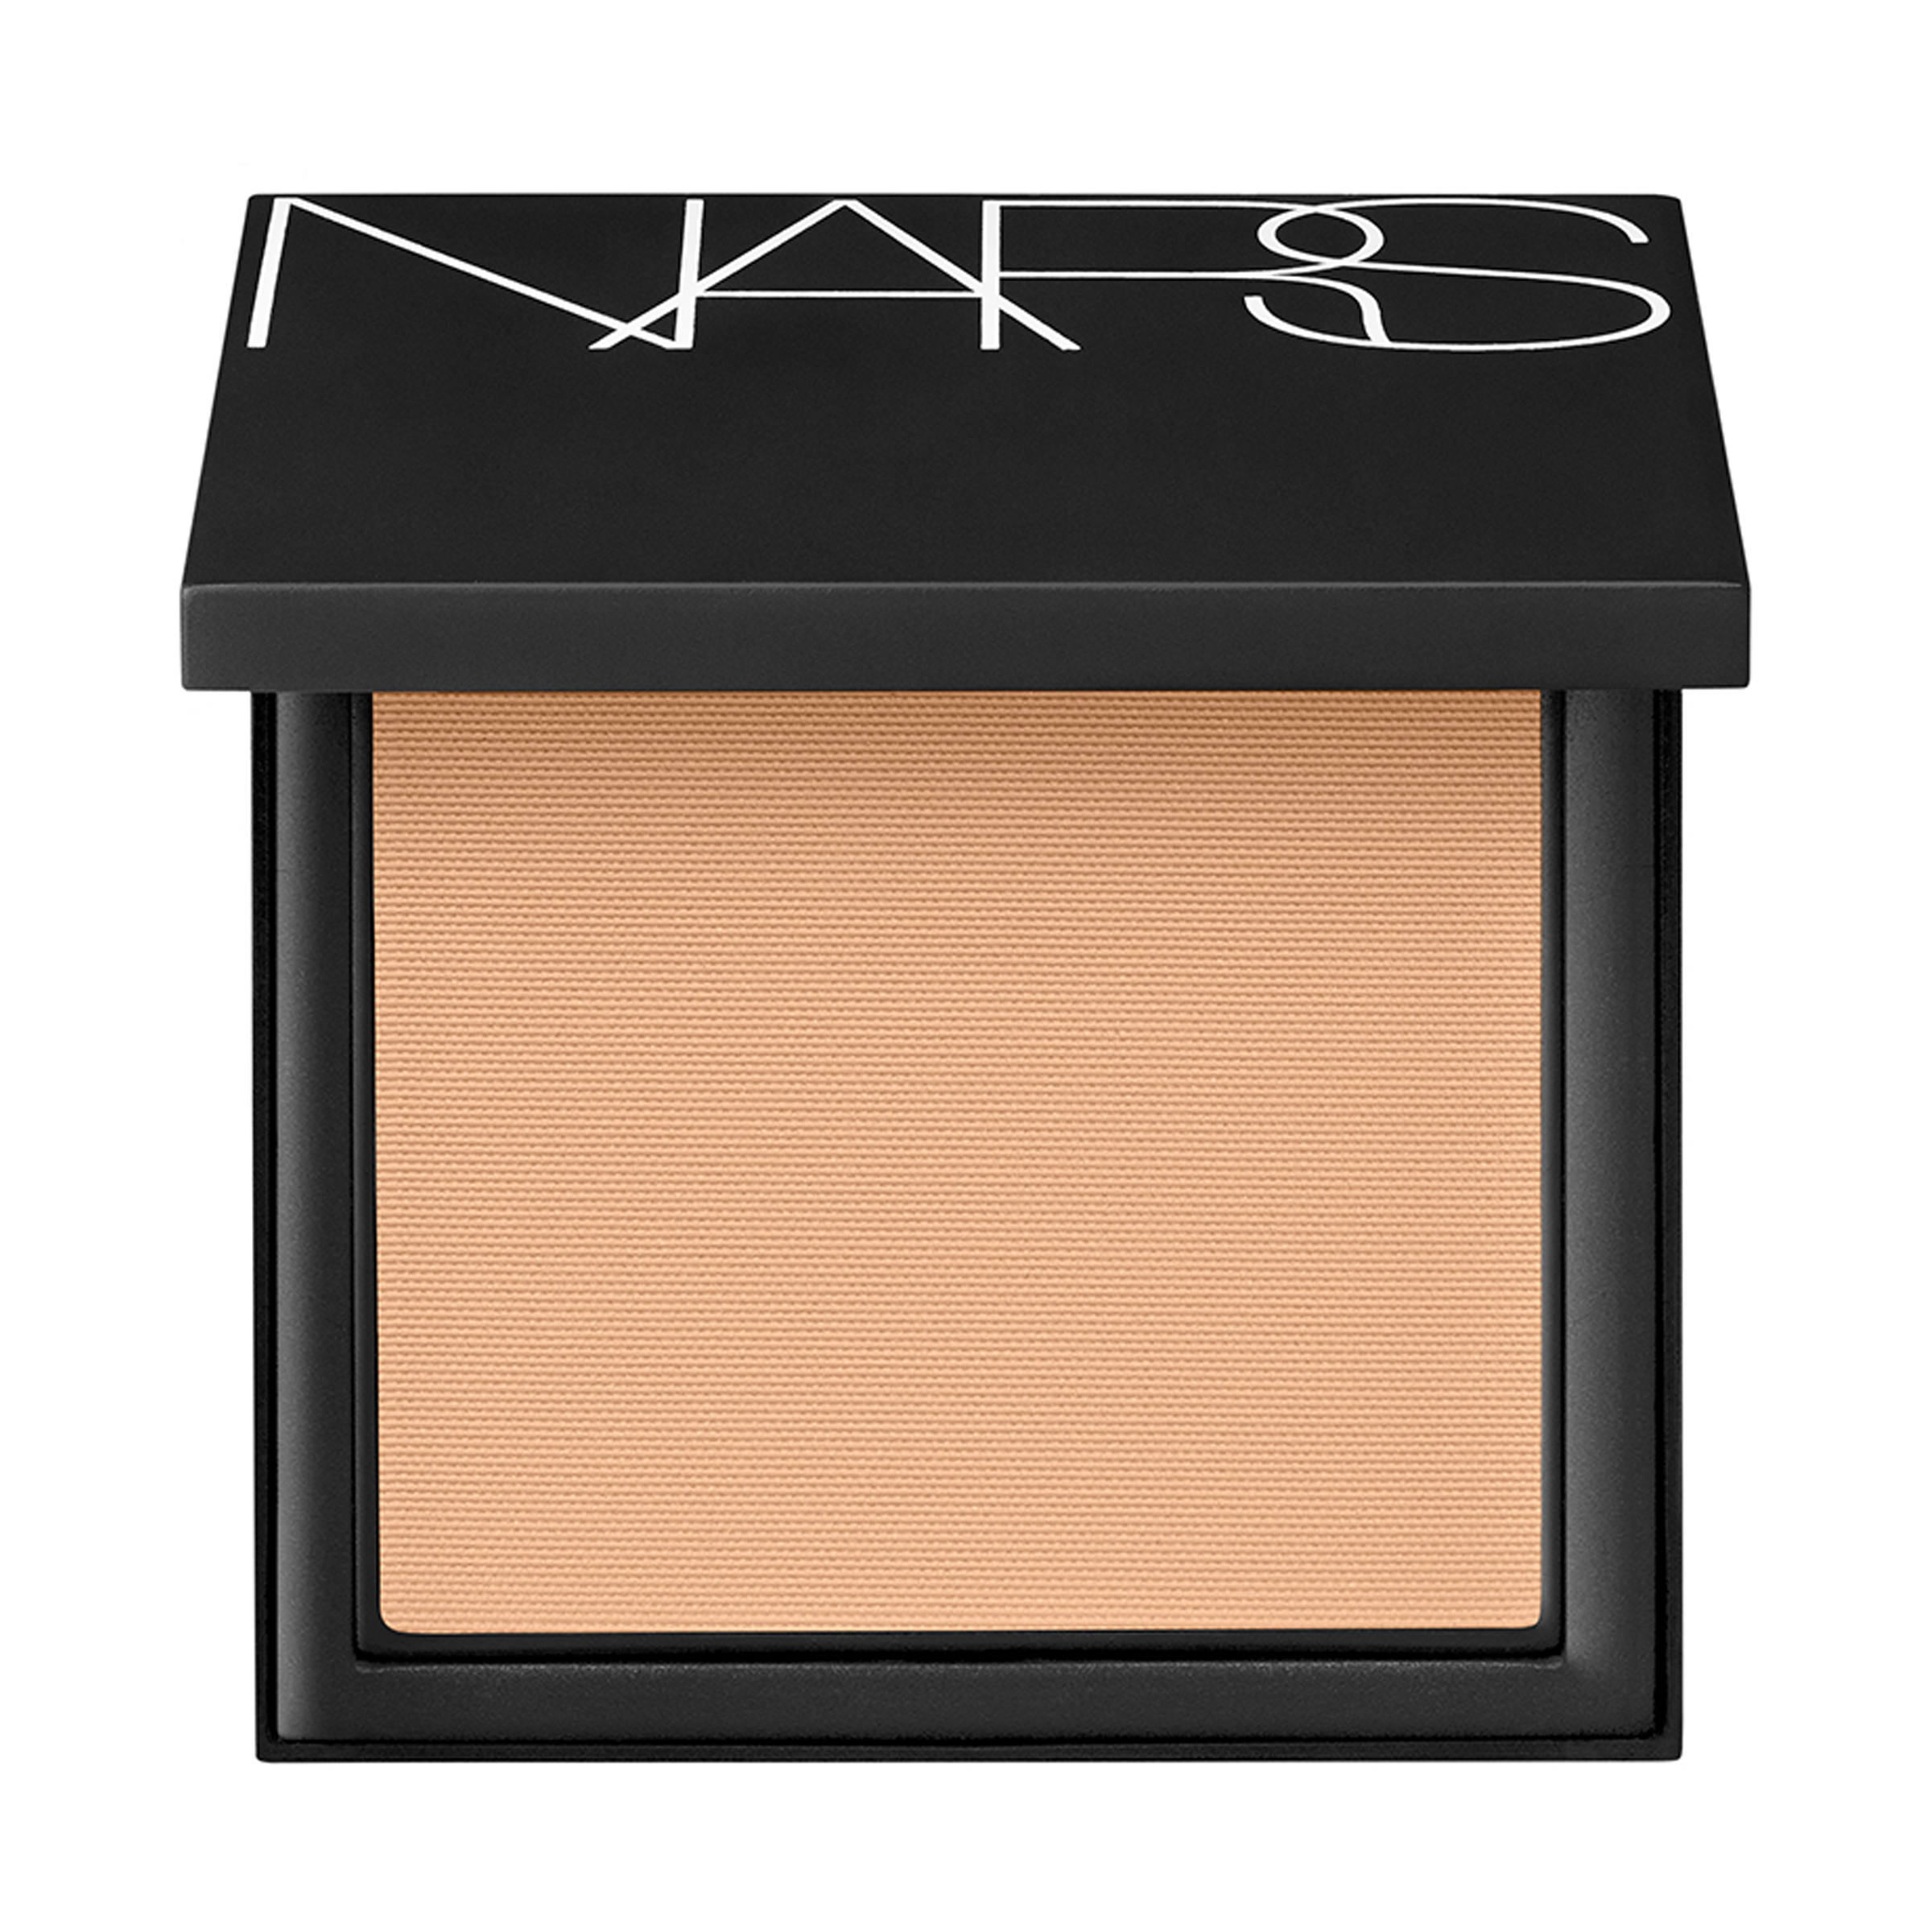 All Day Luminous Powder Foundation Deauville